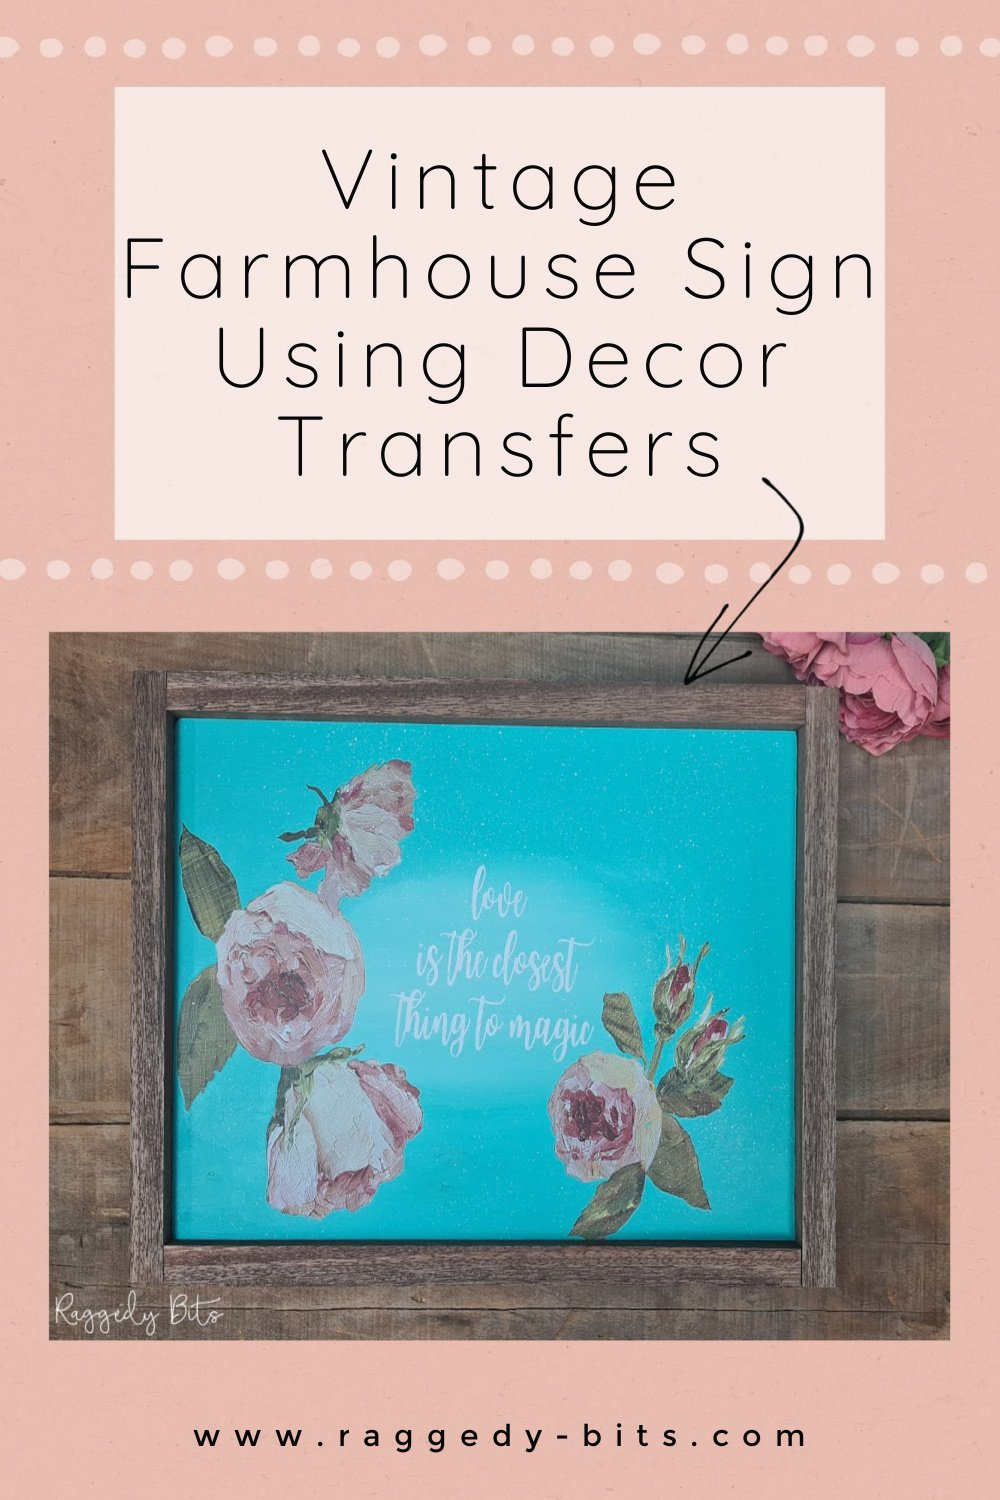 Sharing an easy way to make a fun Vintage Farmhouse Valentines Sign to make to decorate with or even give as a gift | www.raggedy-bits.com | #raggedybits #DIY #valentines #farmhouse #sign #decortransfer #IOD #fusionmineralpaint